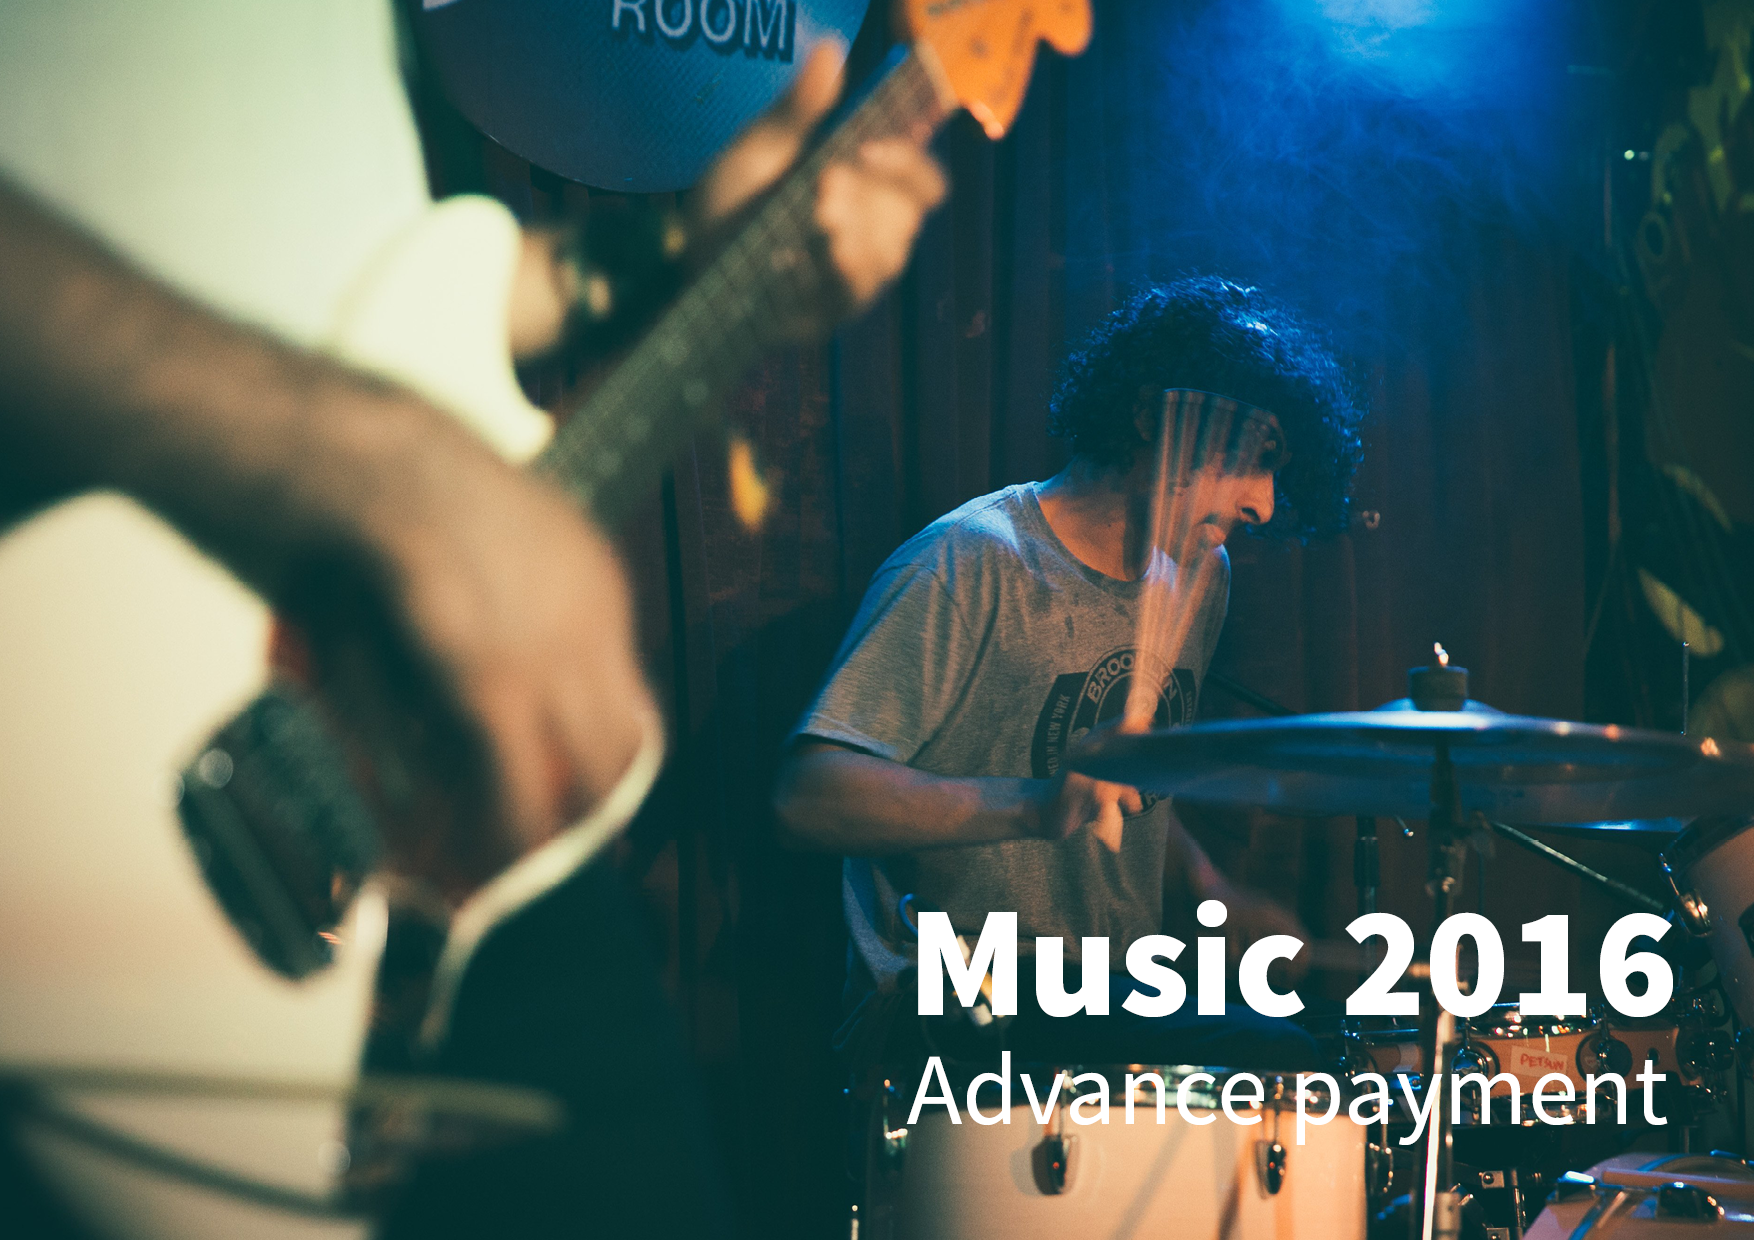 Music 2016: advanced payment of your rights